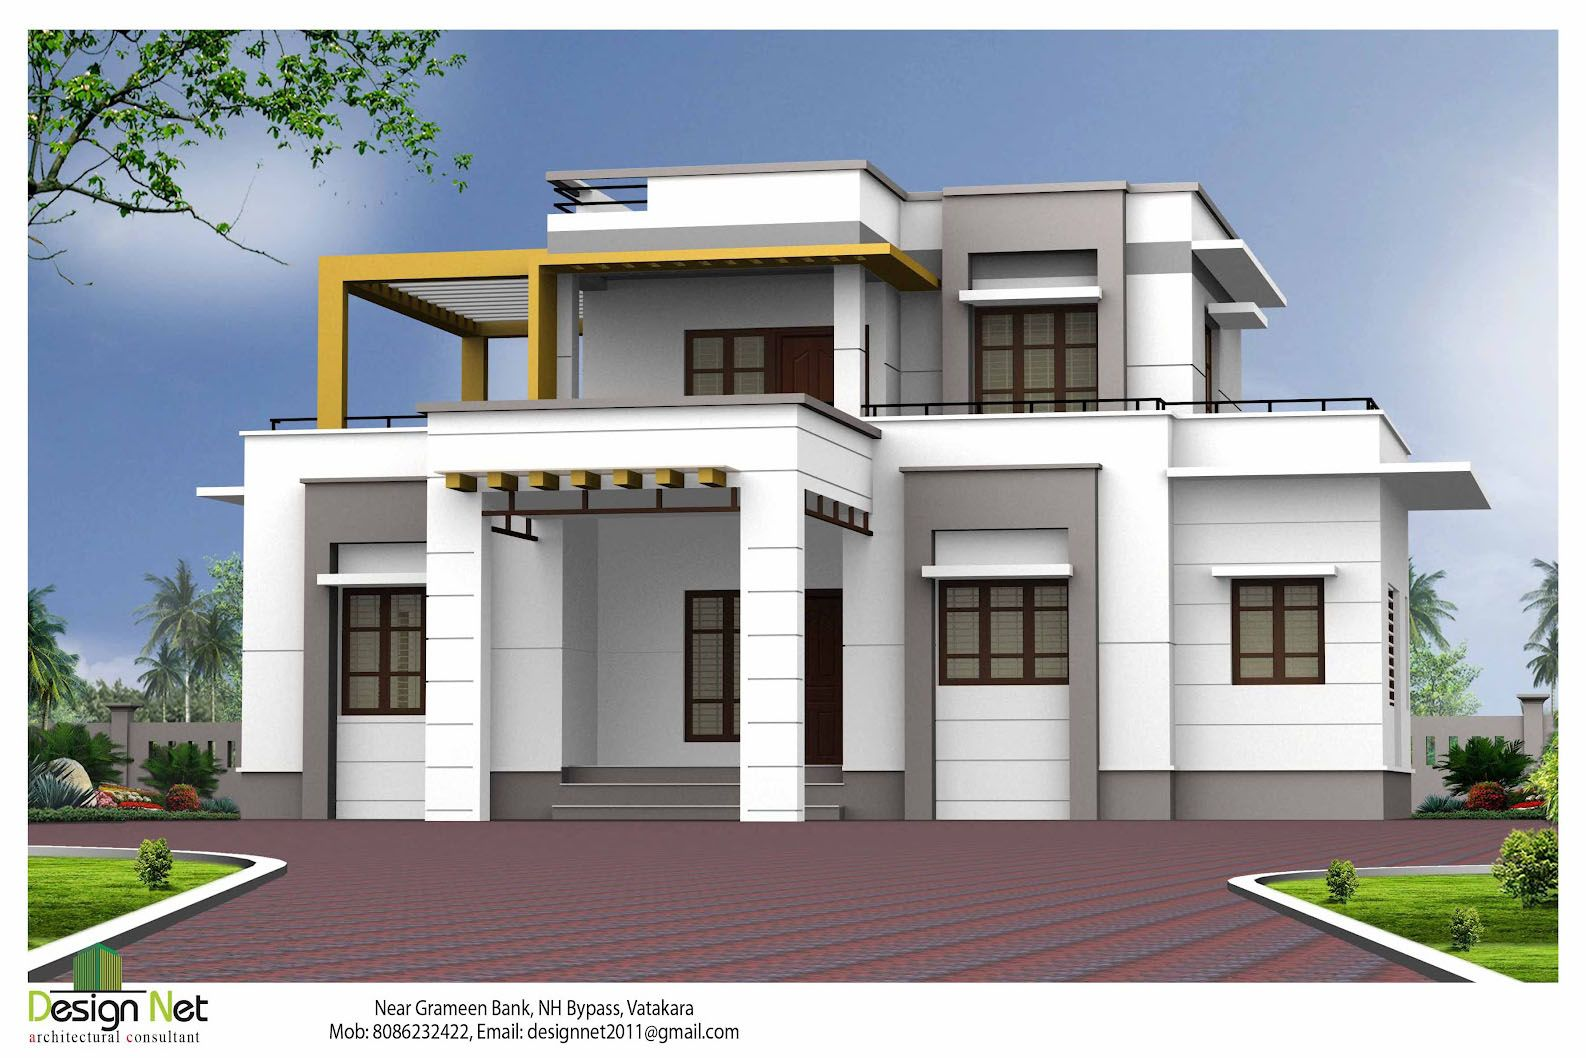 House Exterior Design Contemporary Kerala Home Design Sq Ft Home Appliance Design Studio